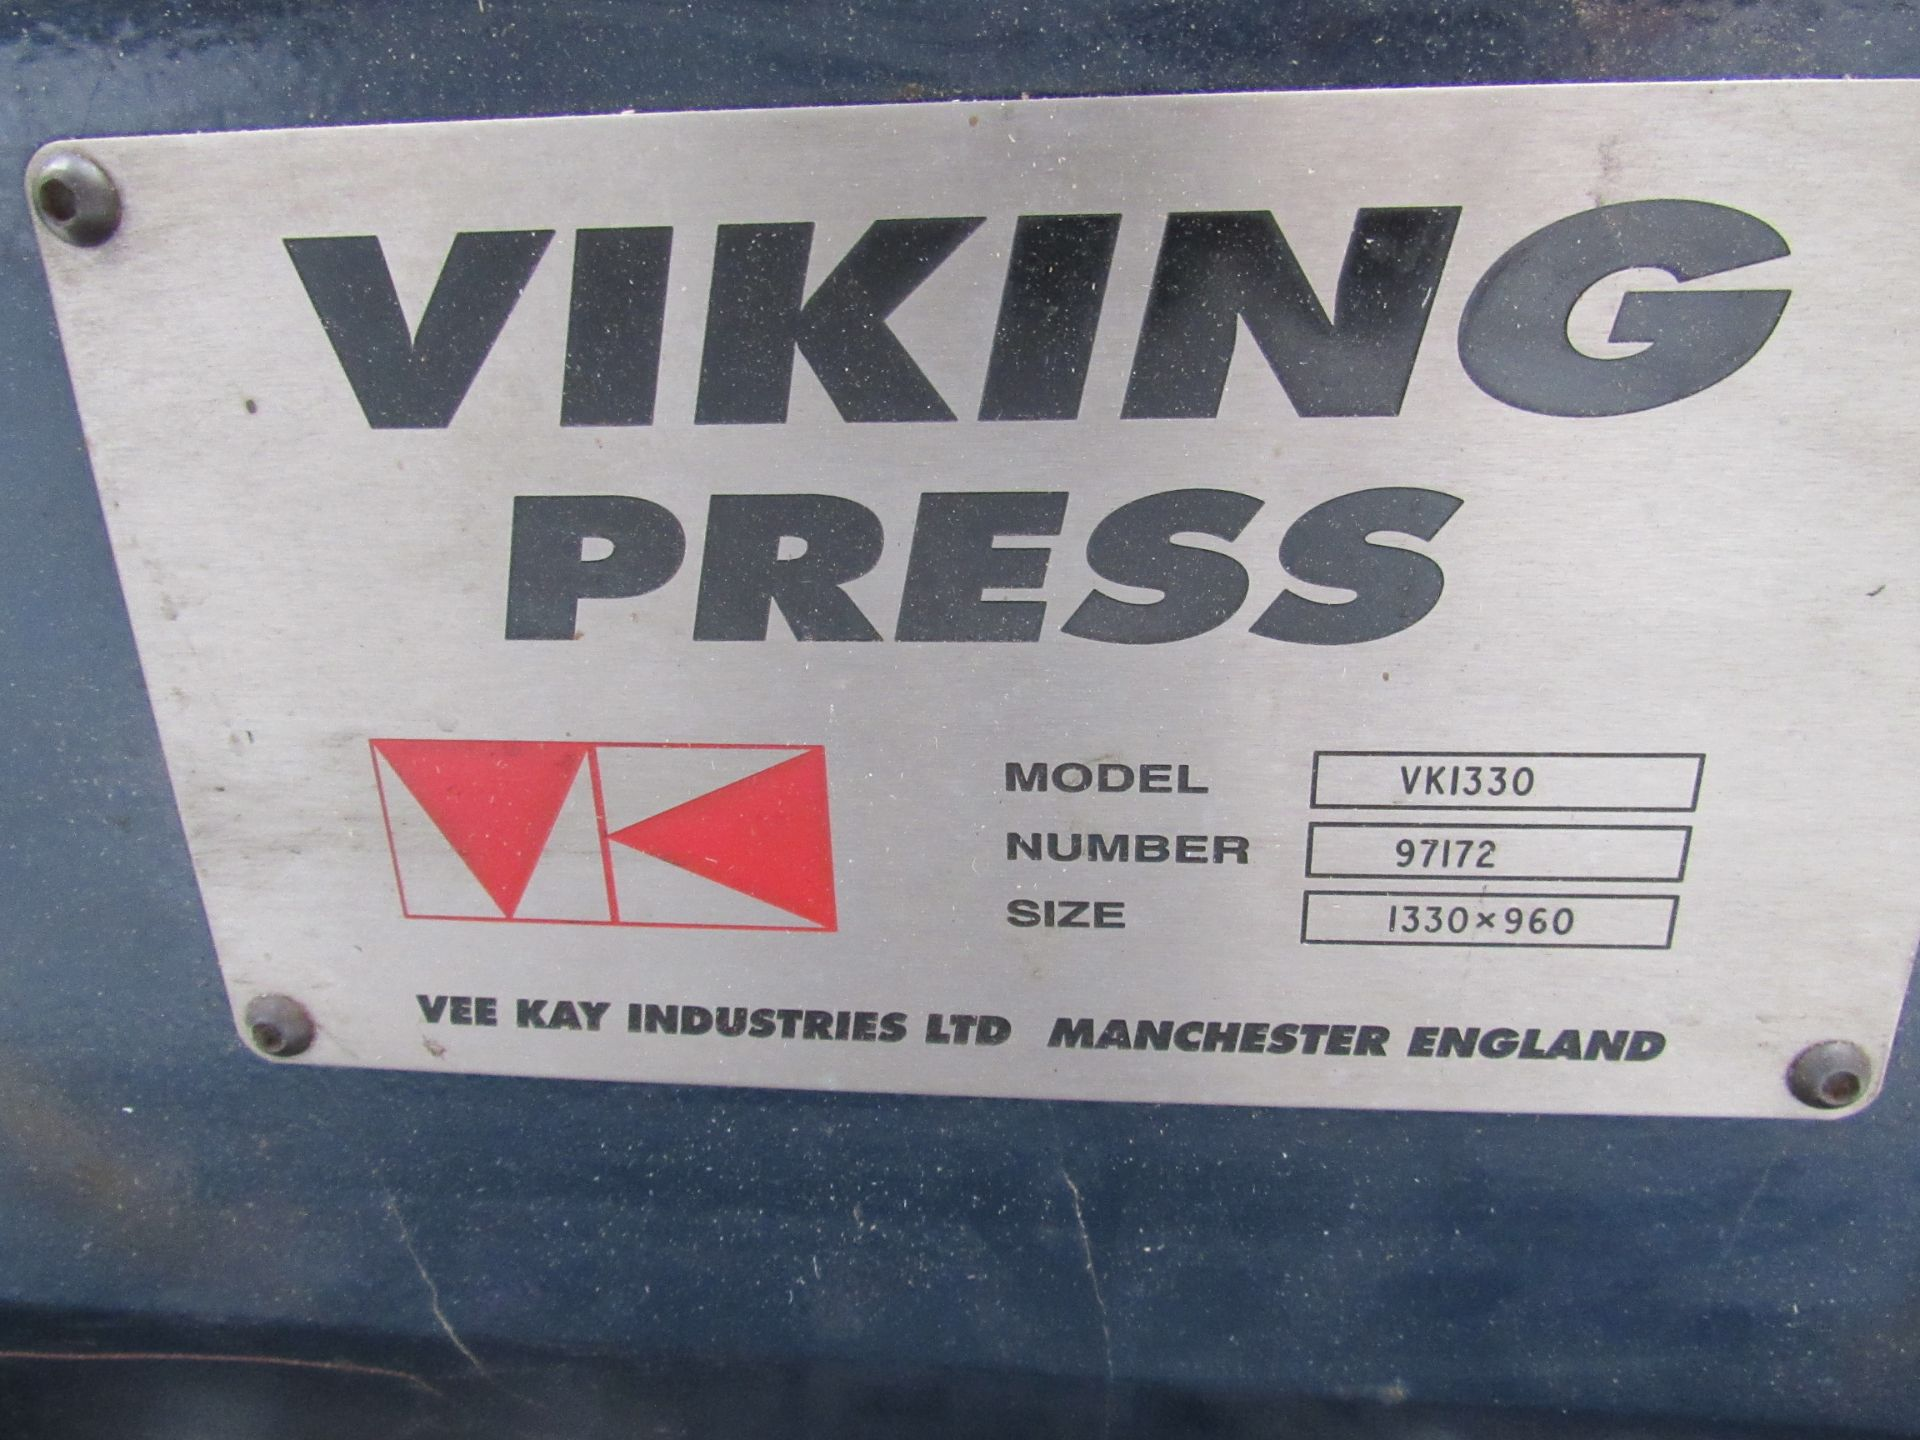 Viking Press VK1330 Cut and Crease Platen 1330 x 960mm Serial Number 97172 - Image 7 of 9